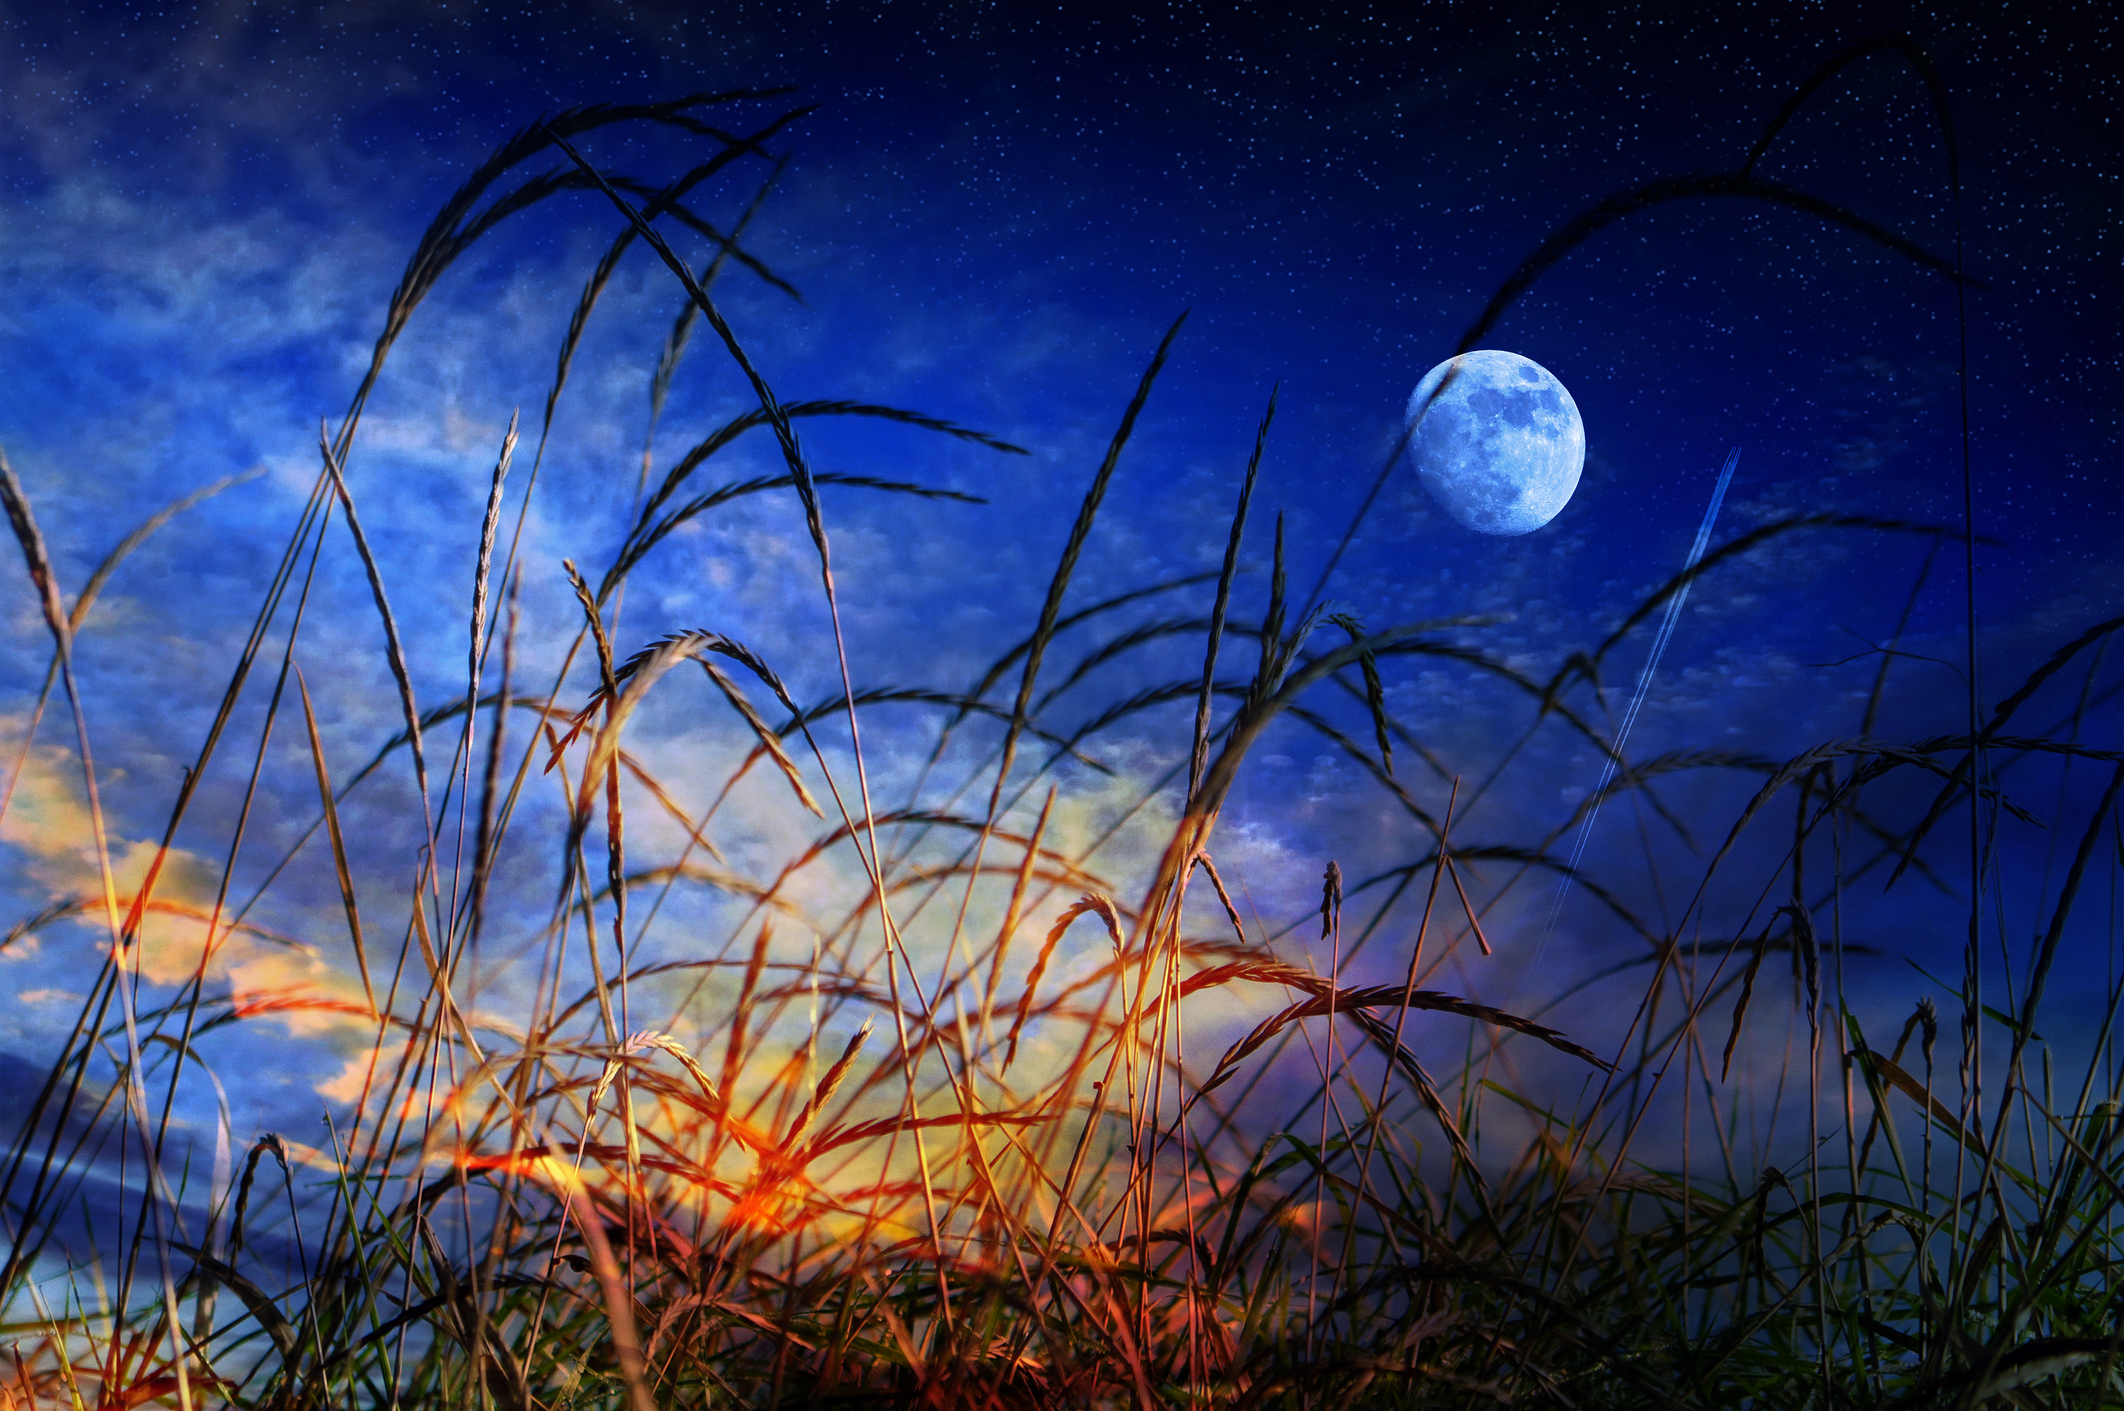 Grass blades in the foreground and blue moon night in the background